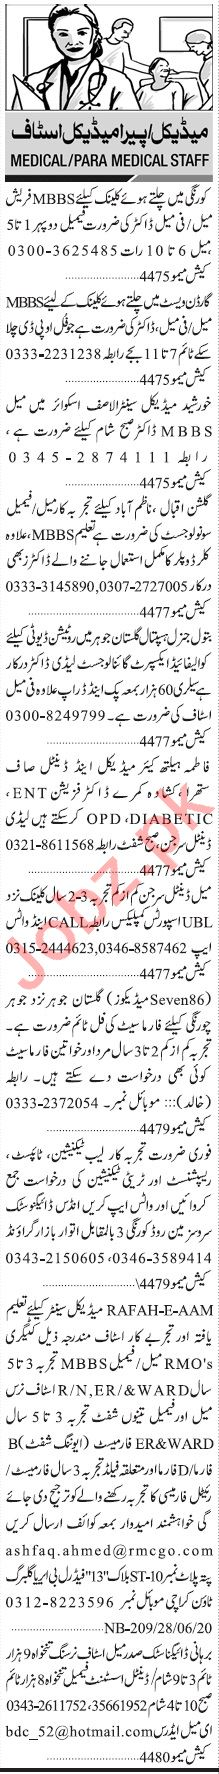 Jang Sunday Classified Ads 28 June 2020 Paramedical Staff